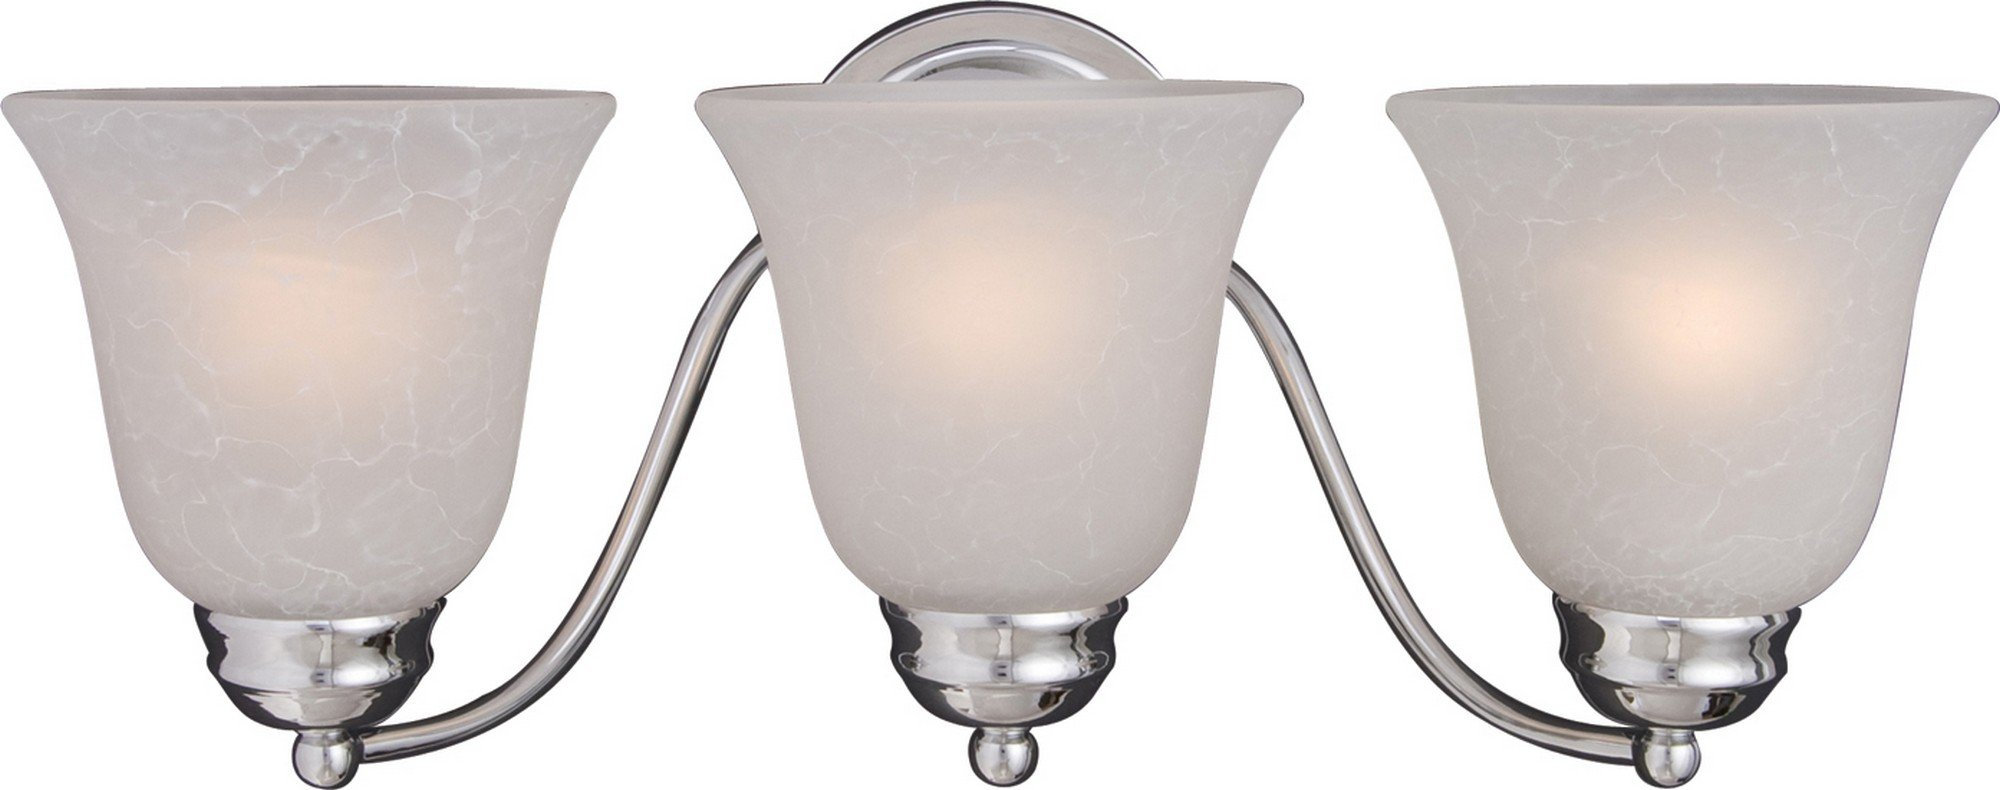 Maxim 2122ICPC Basix 3-Light Bath Vanity, Polished Chrome Finish, Ice Glass, MB Incandescent Incandescent Bulb, 60W Max, Dry Safety Rating, Standard Dimmable, Metal Shade Material, Rated Lumens